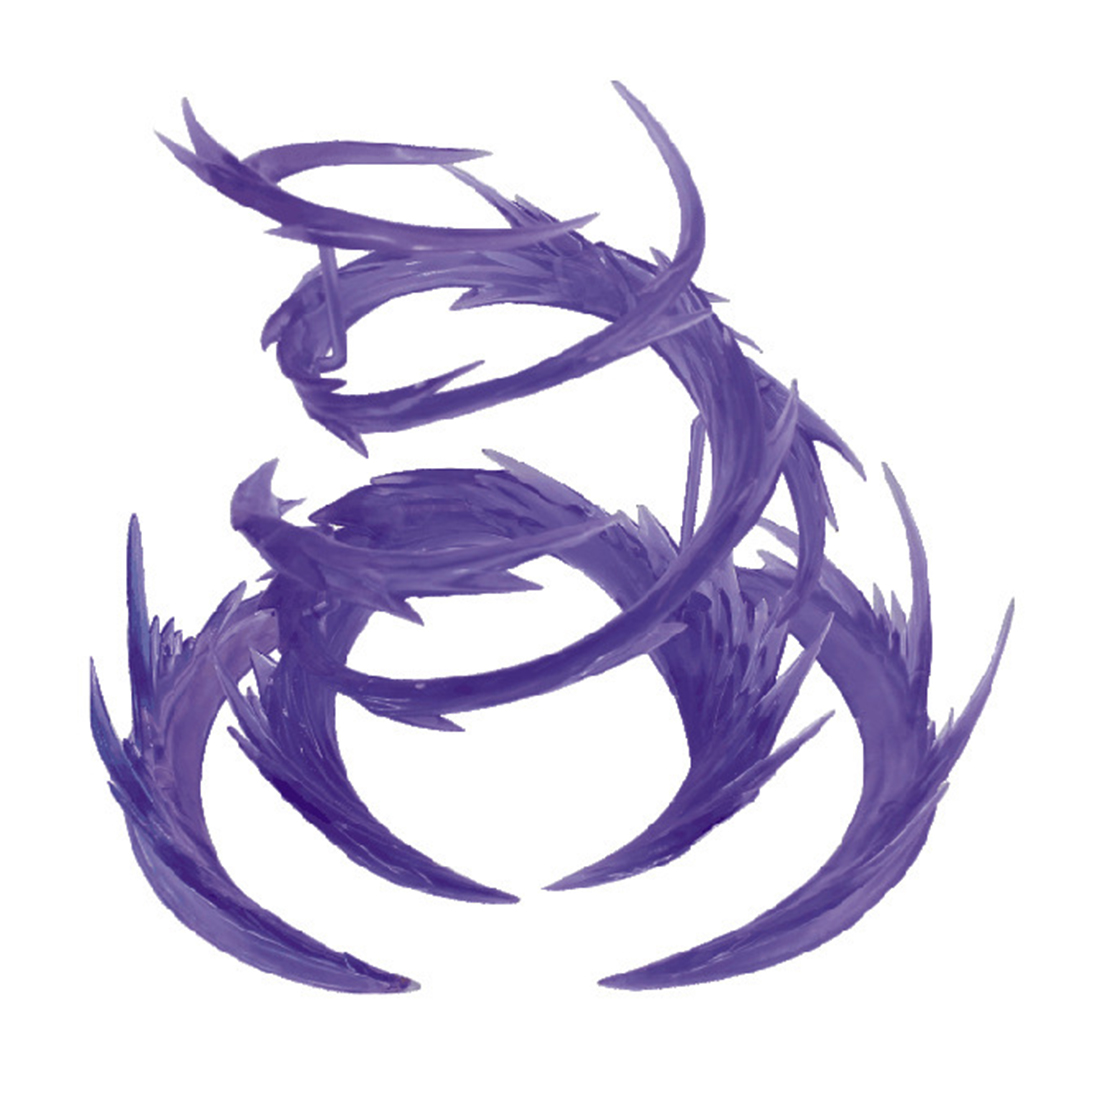 Whirlwind Flame Special Effects Decoration For EFFECT SHF Superalloy Gundam Model Action & Toy Figures- Purple